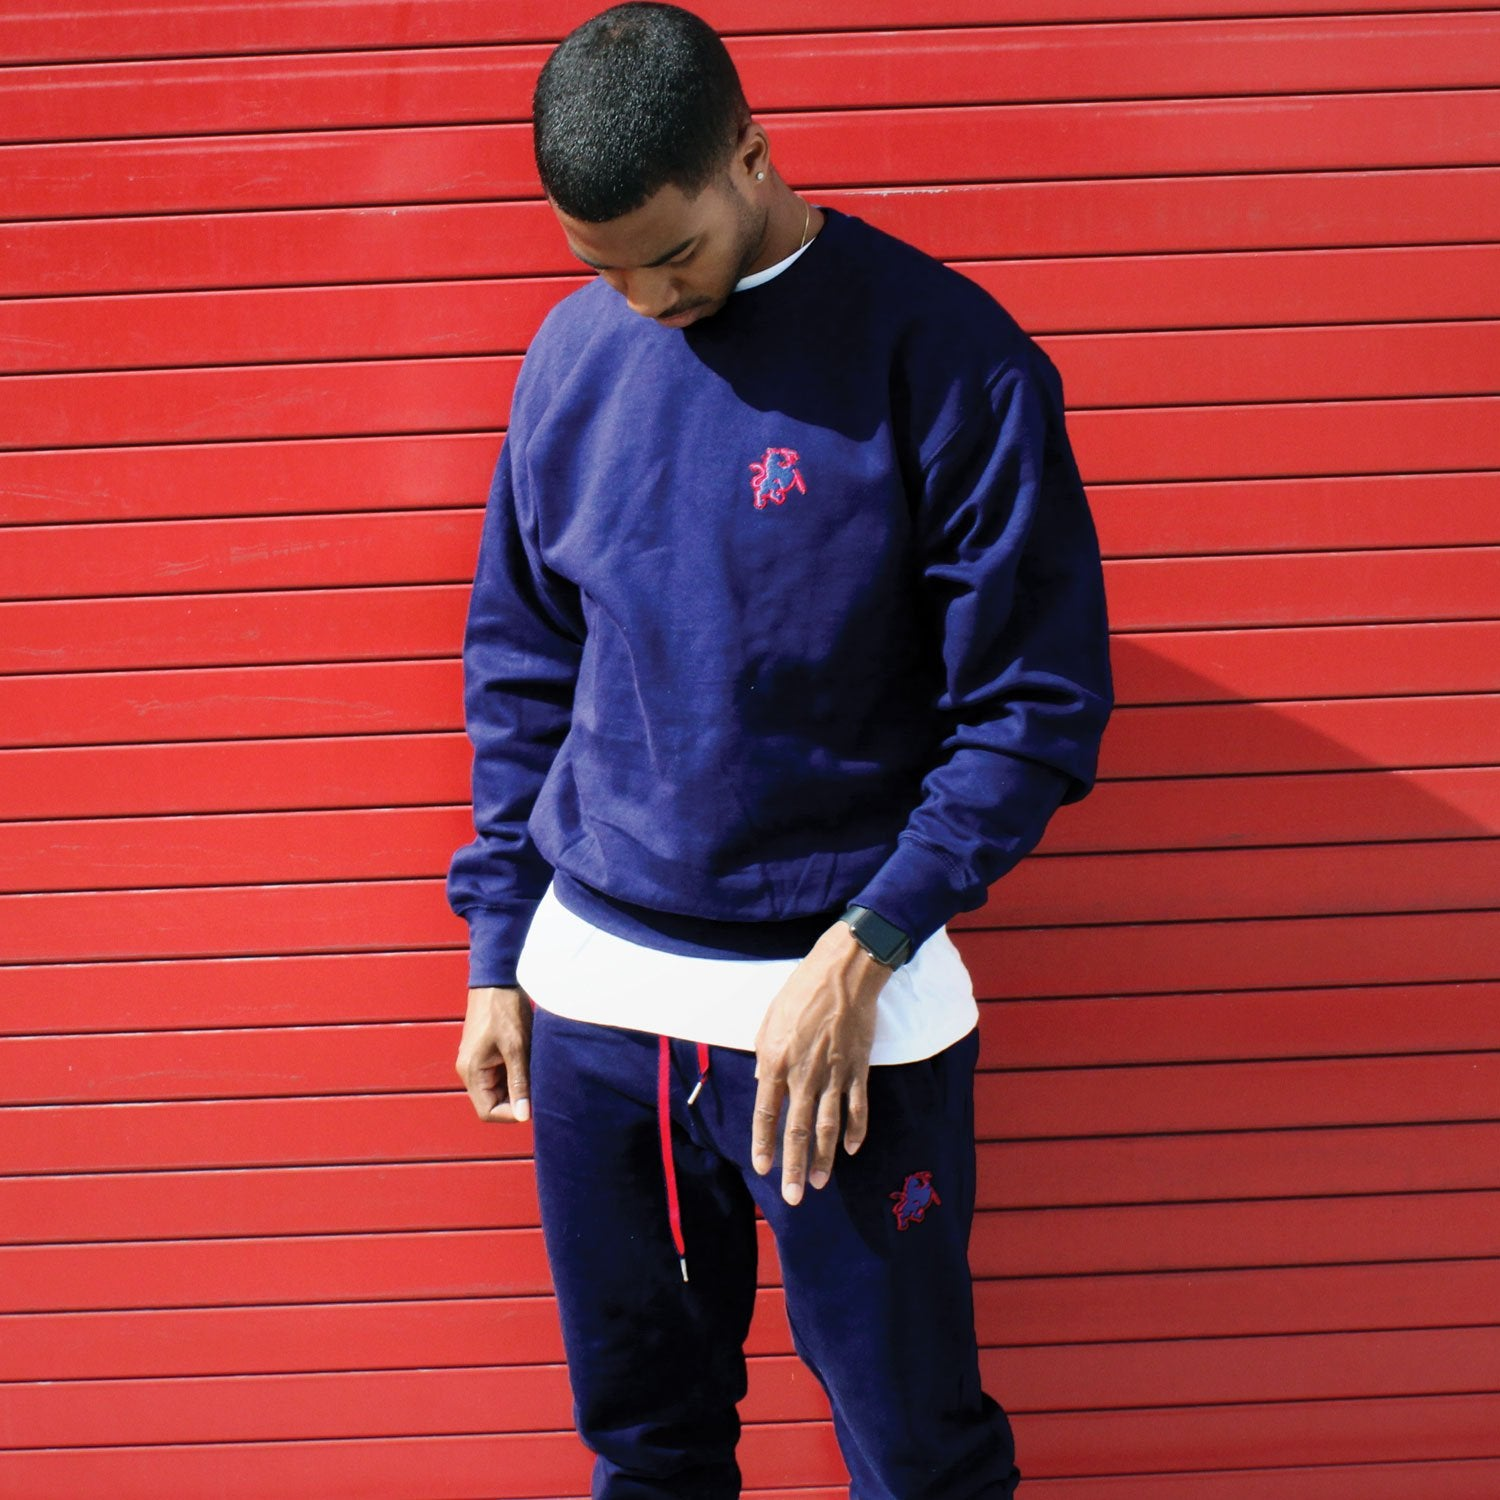 Navy blue sweatsuit